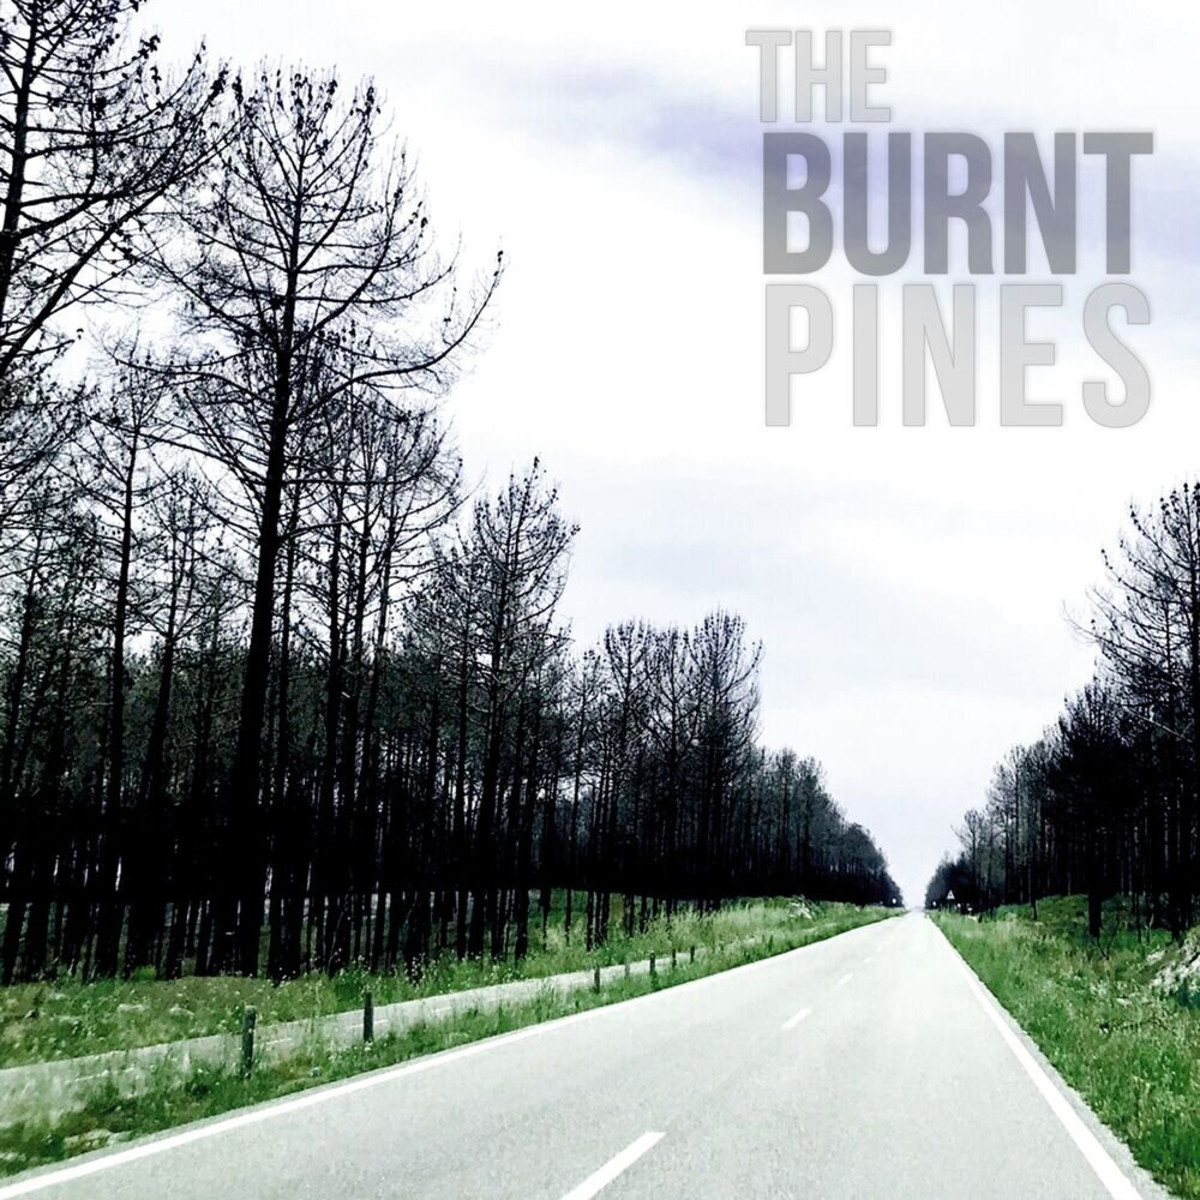 The+Burnt+pines+CD+cover